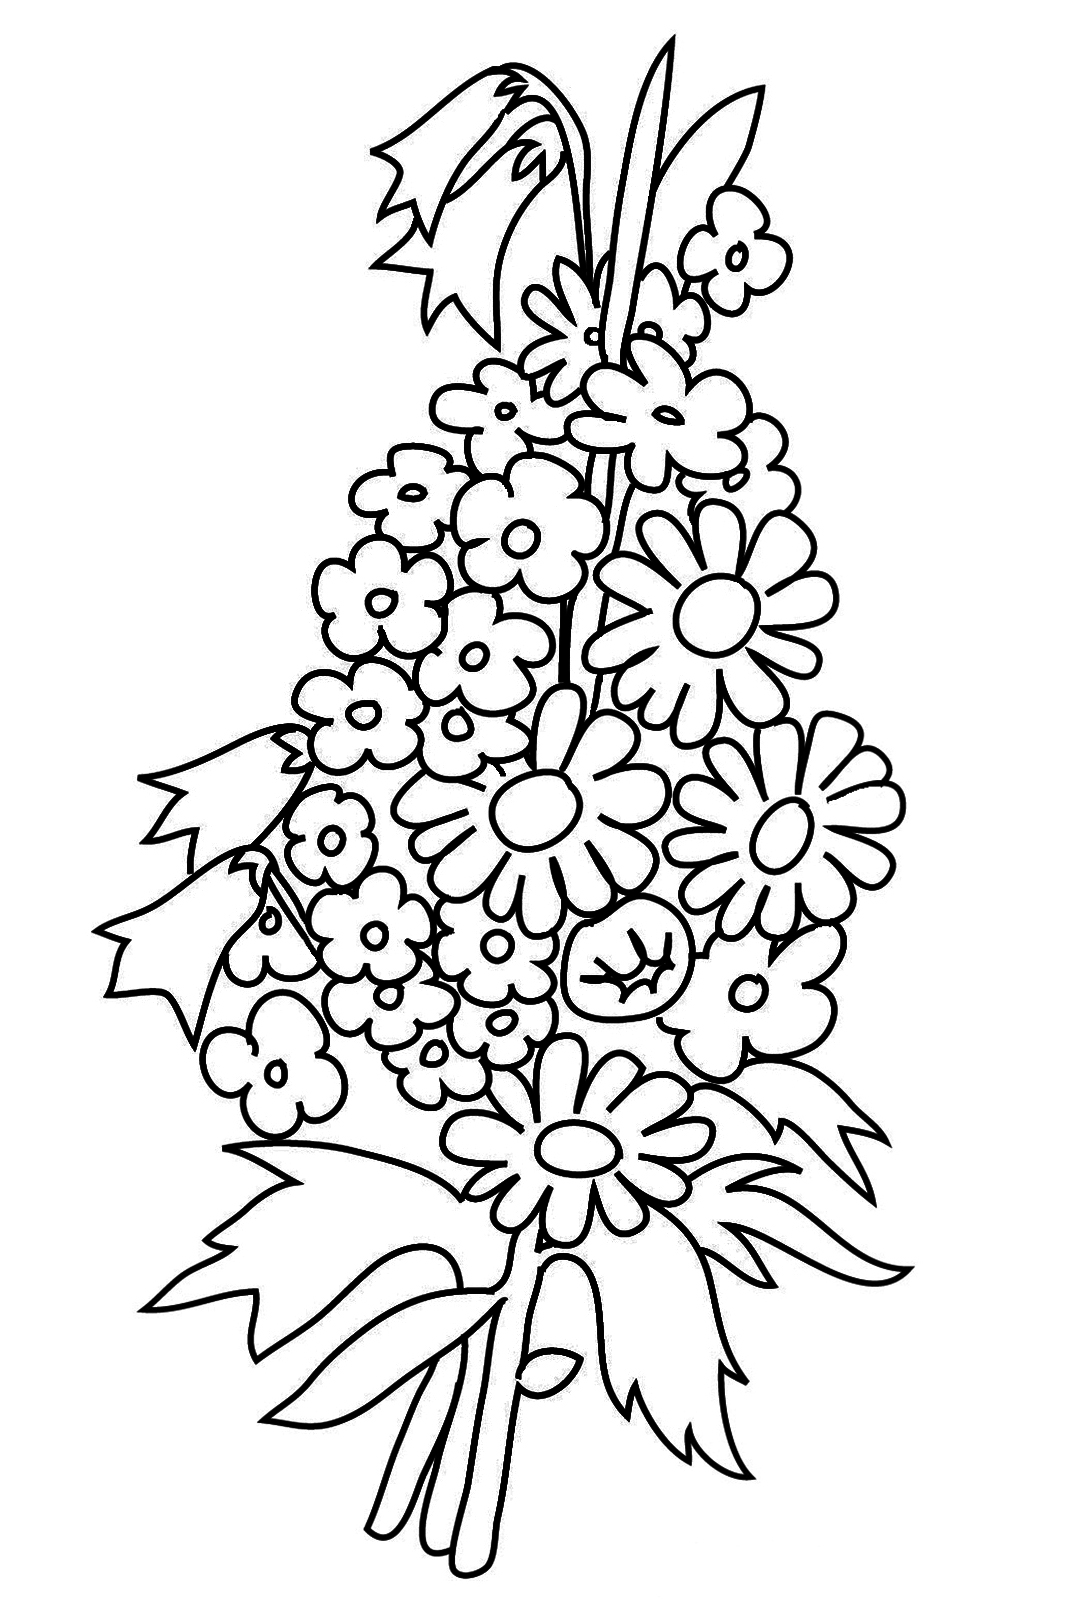 flower templates for coloring flower coloring pages 1 coloring kids coloring kids coloring templates for flower